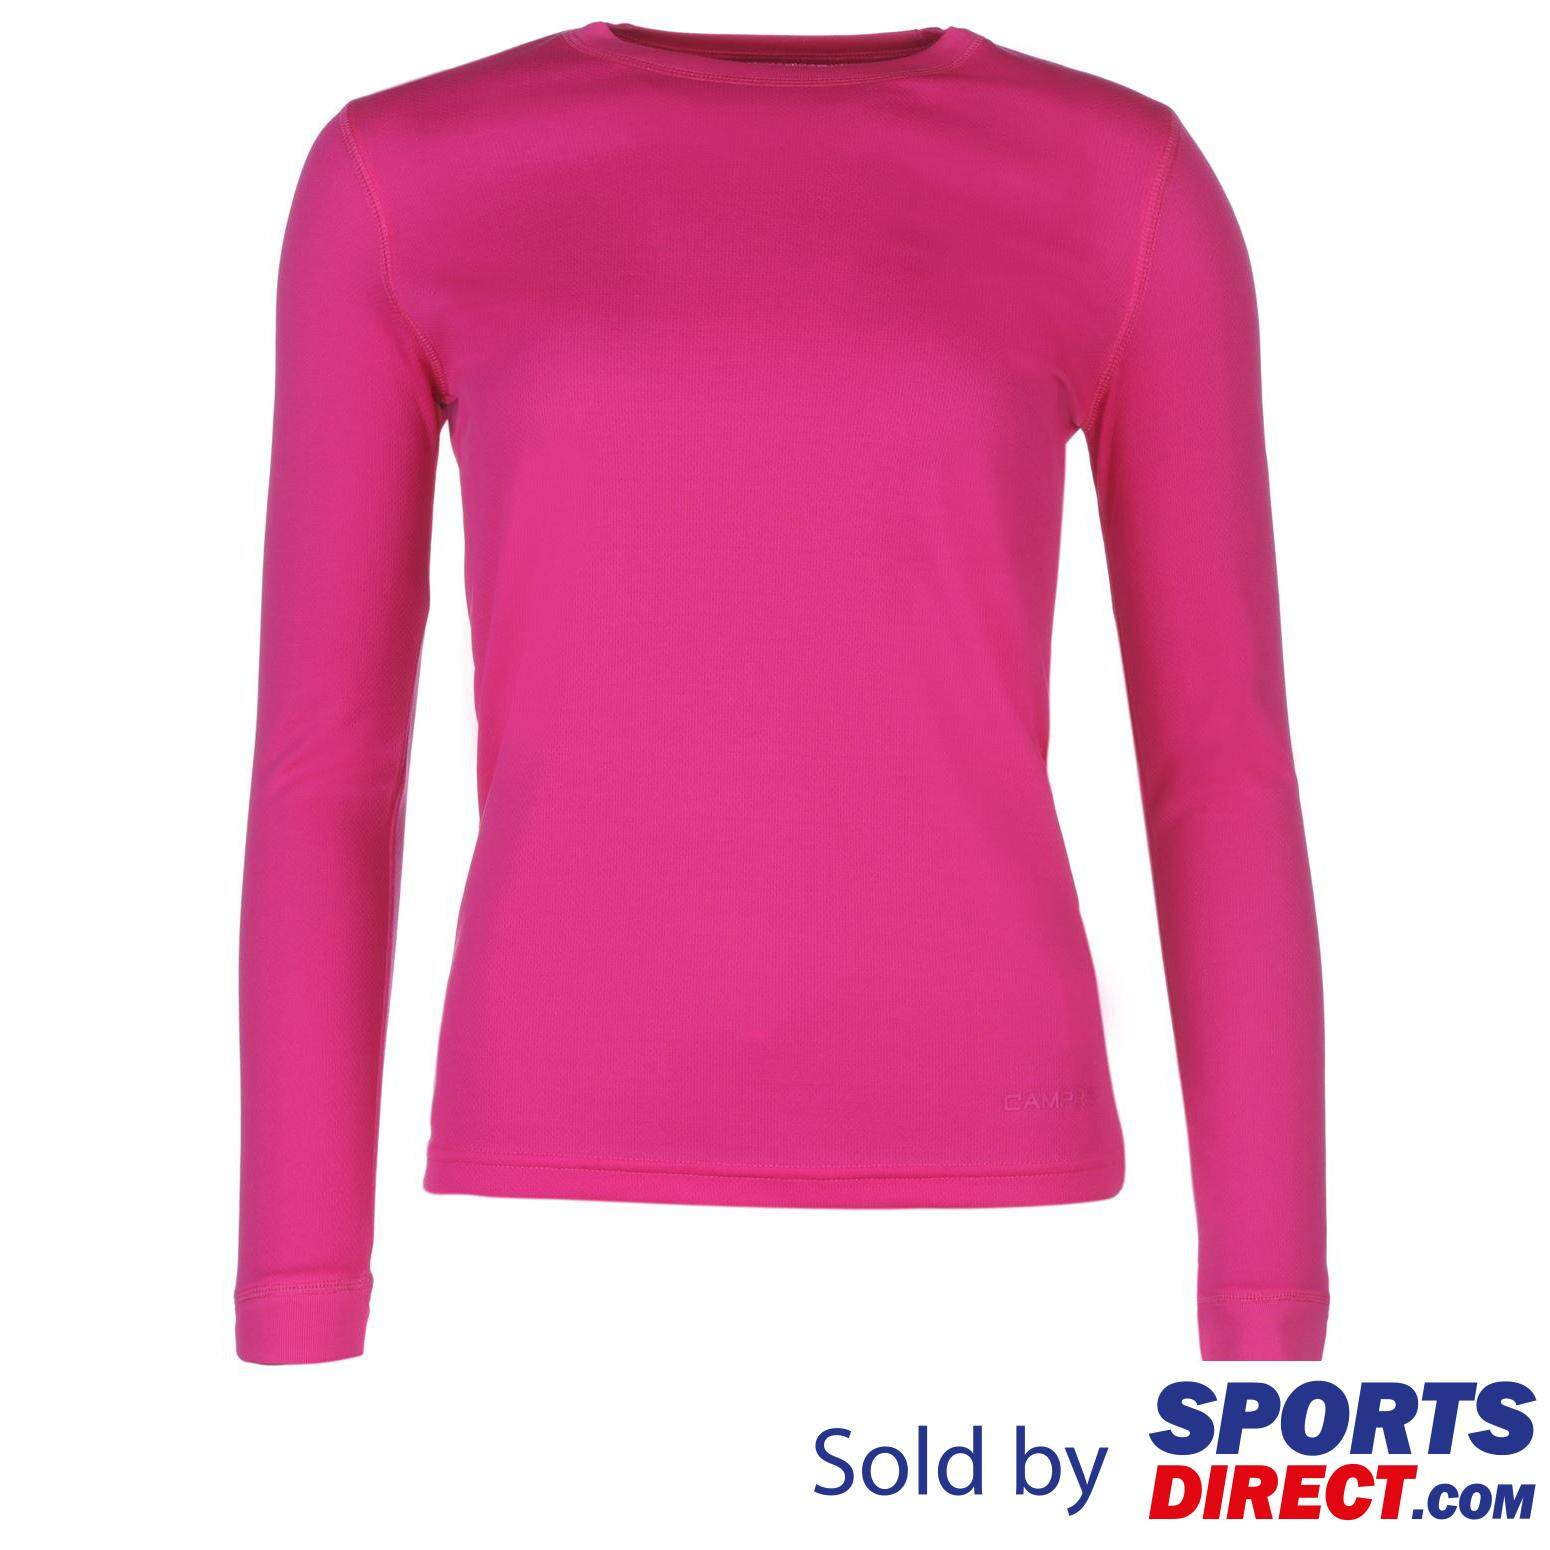 Campri Womens Thermal Top (pink) By Sports Direct Mst Sdn Bhd.